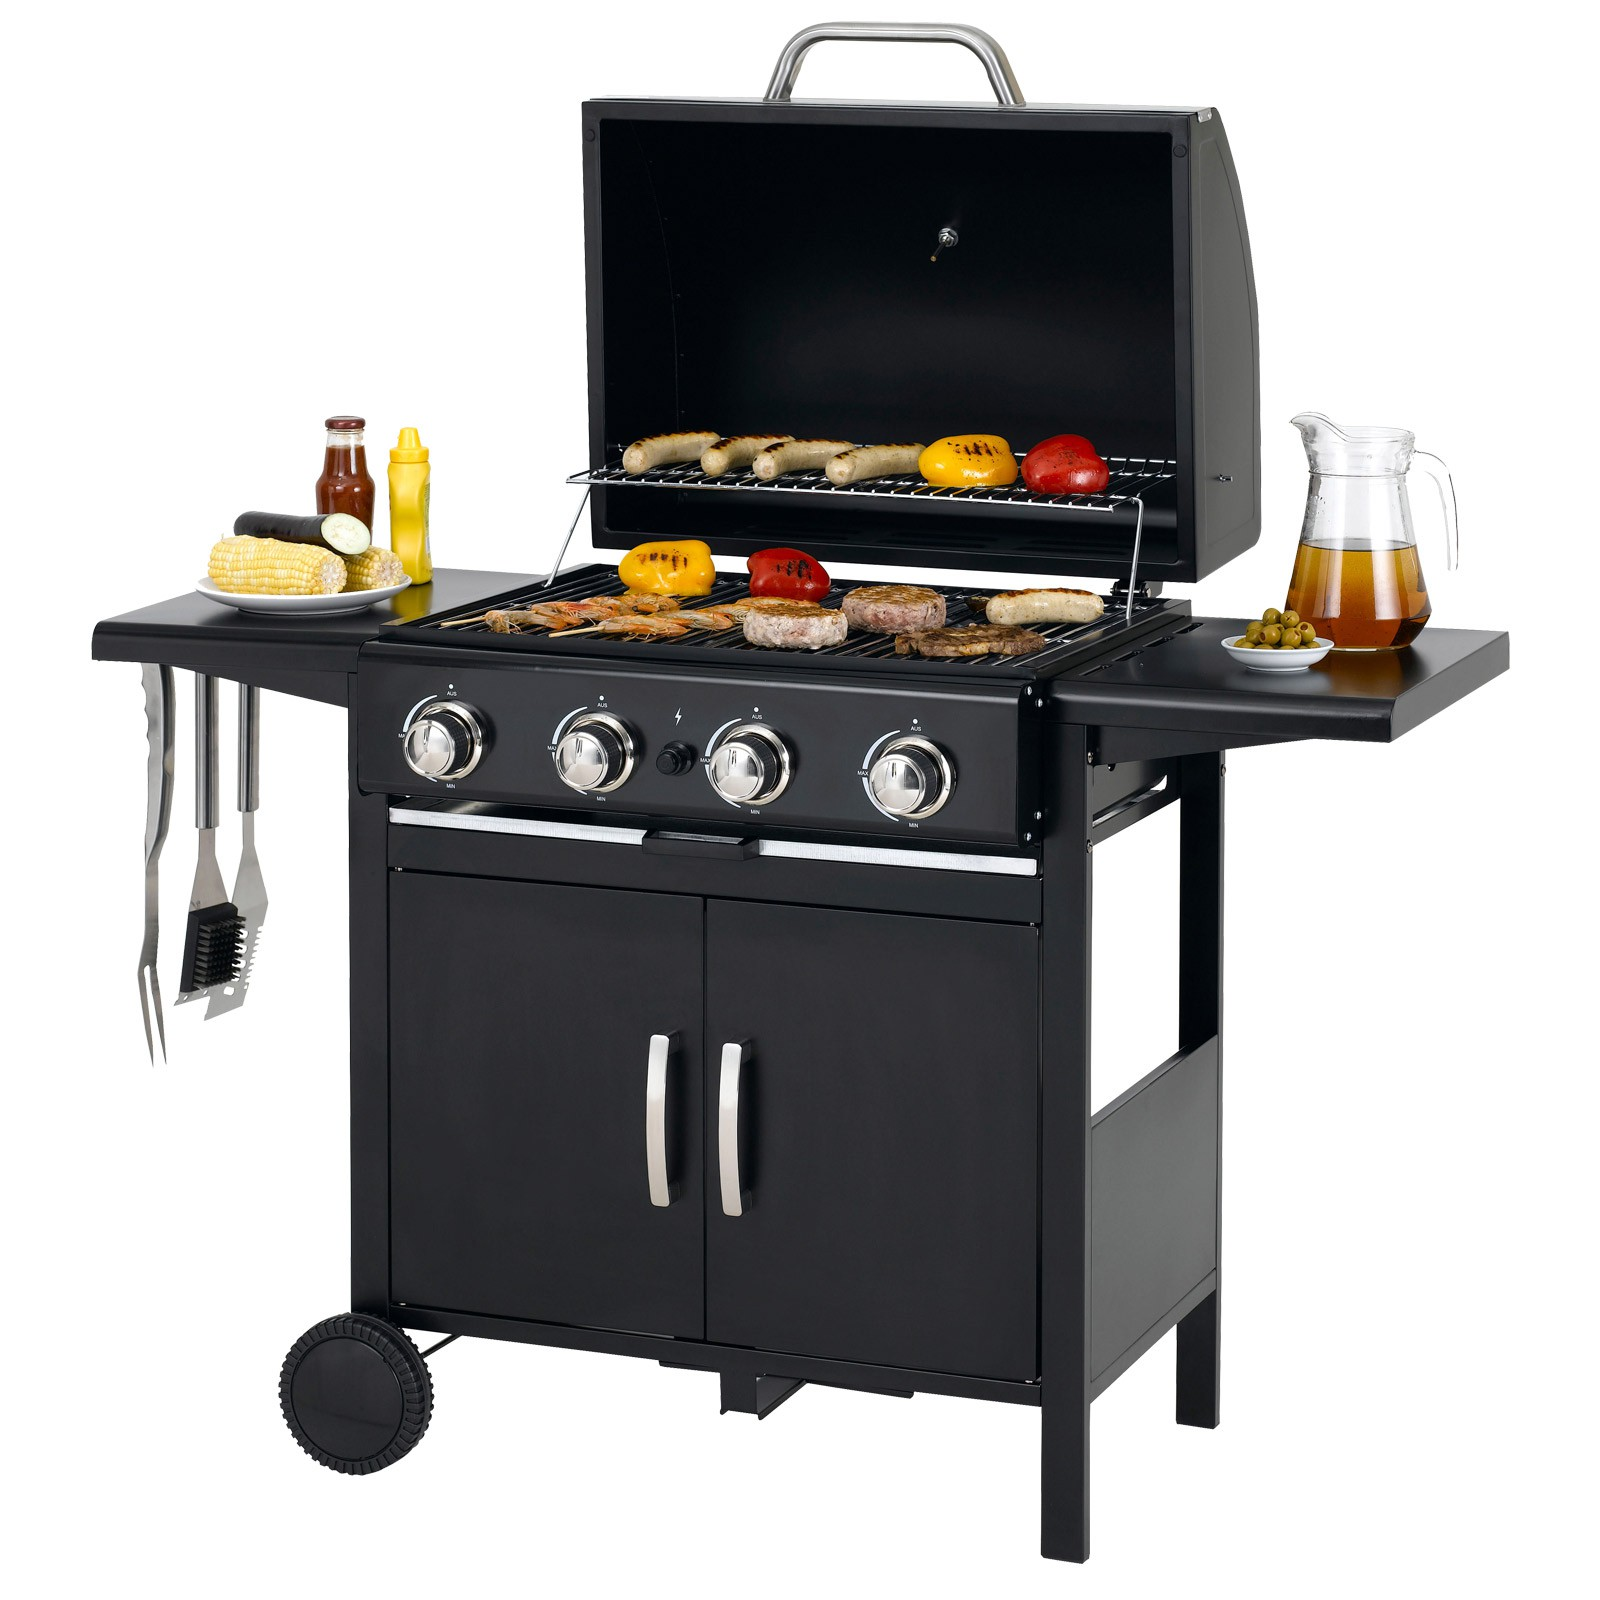 tepro gasgrill bbq grill grillwagen campinggrill barbecue richfield ebay. Black Bedroom Furniture Sets. Home Design Ideas